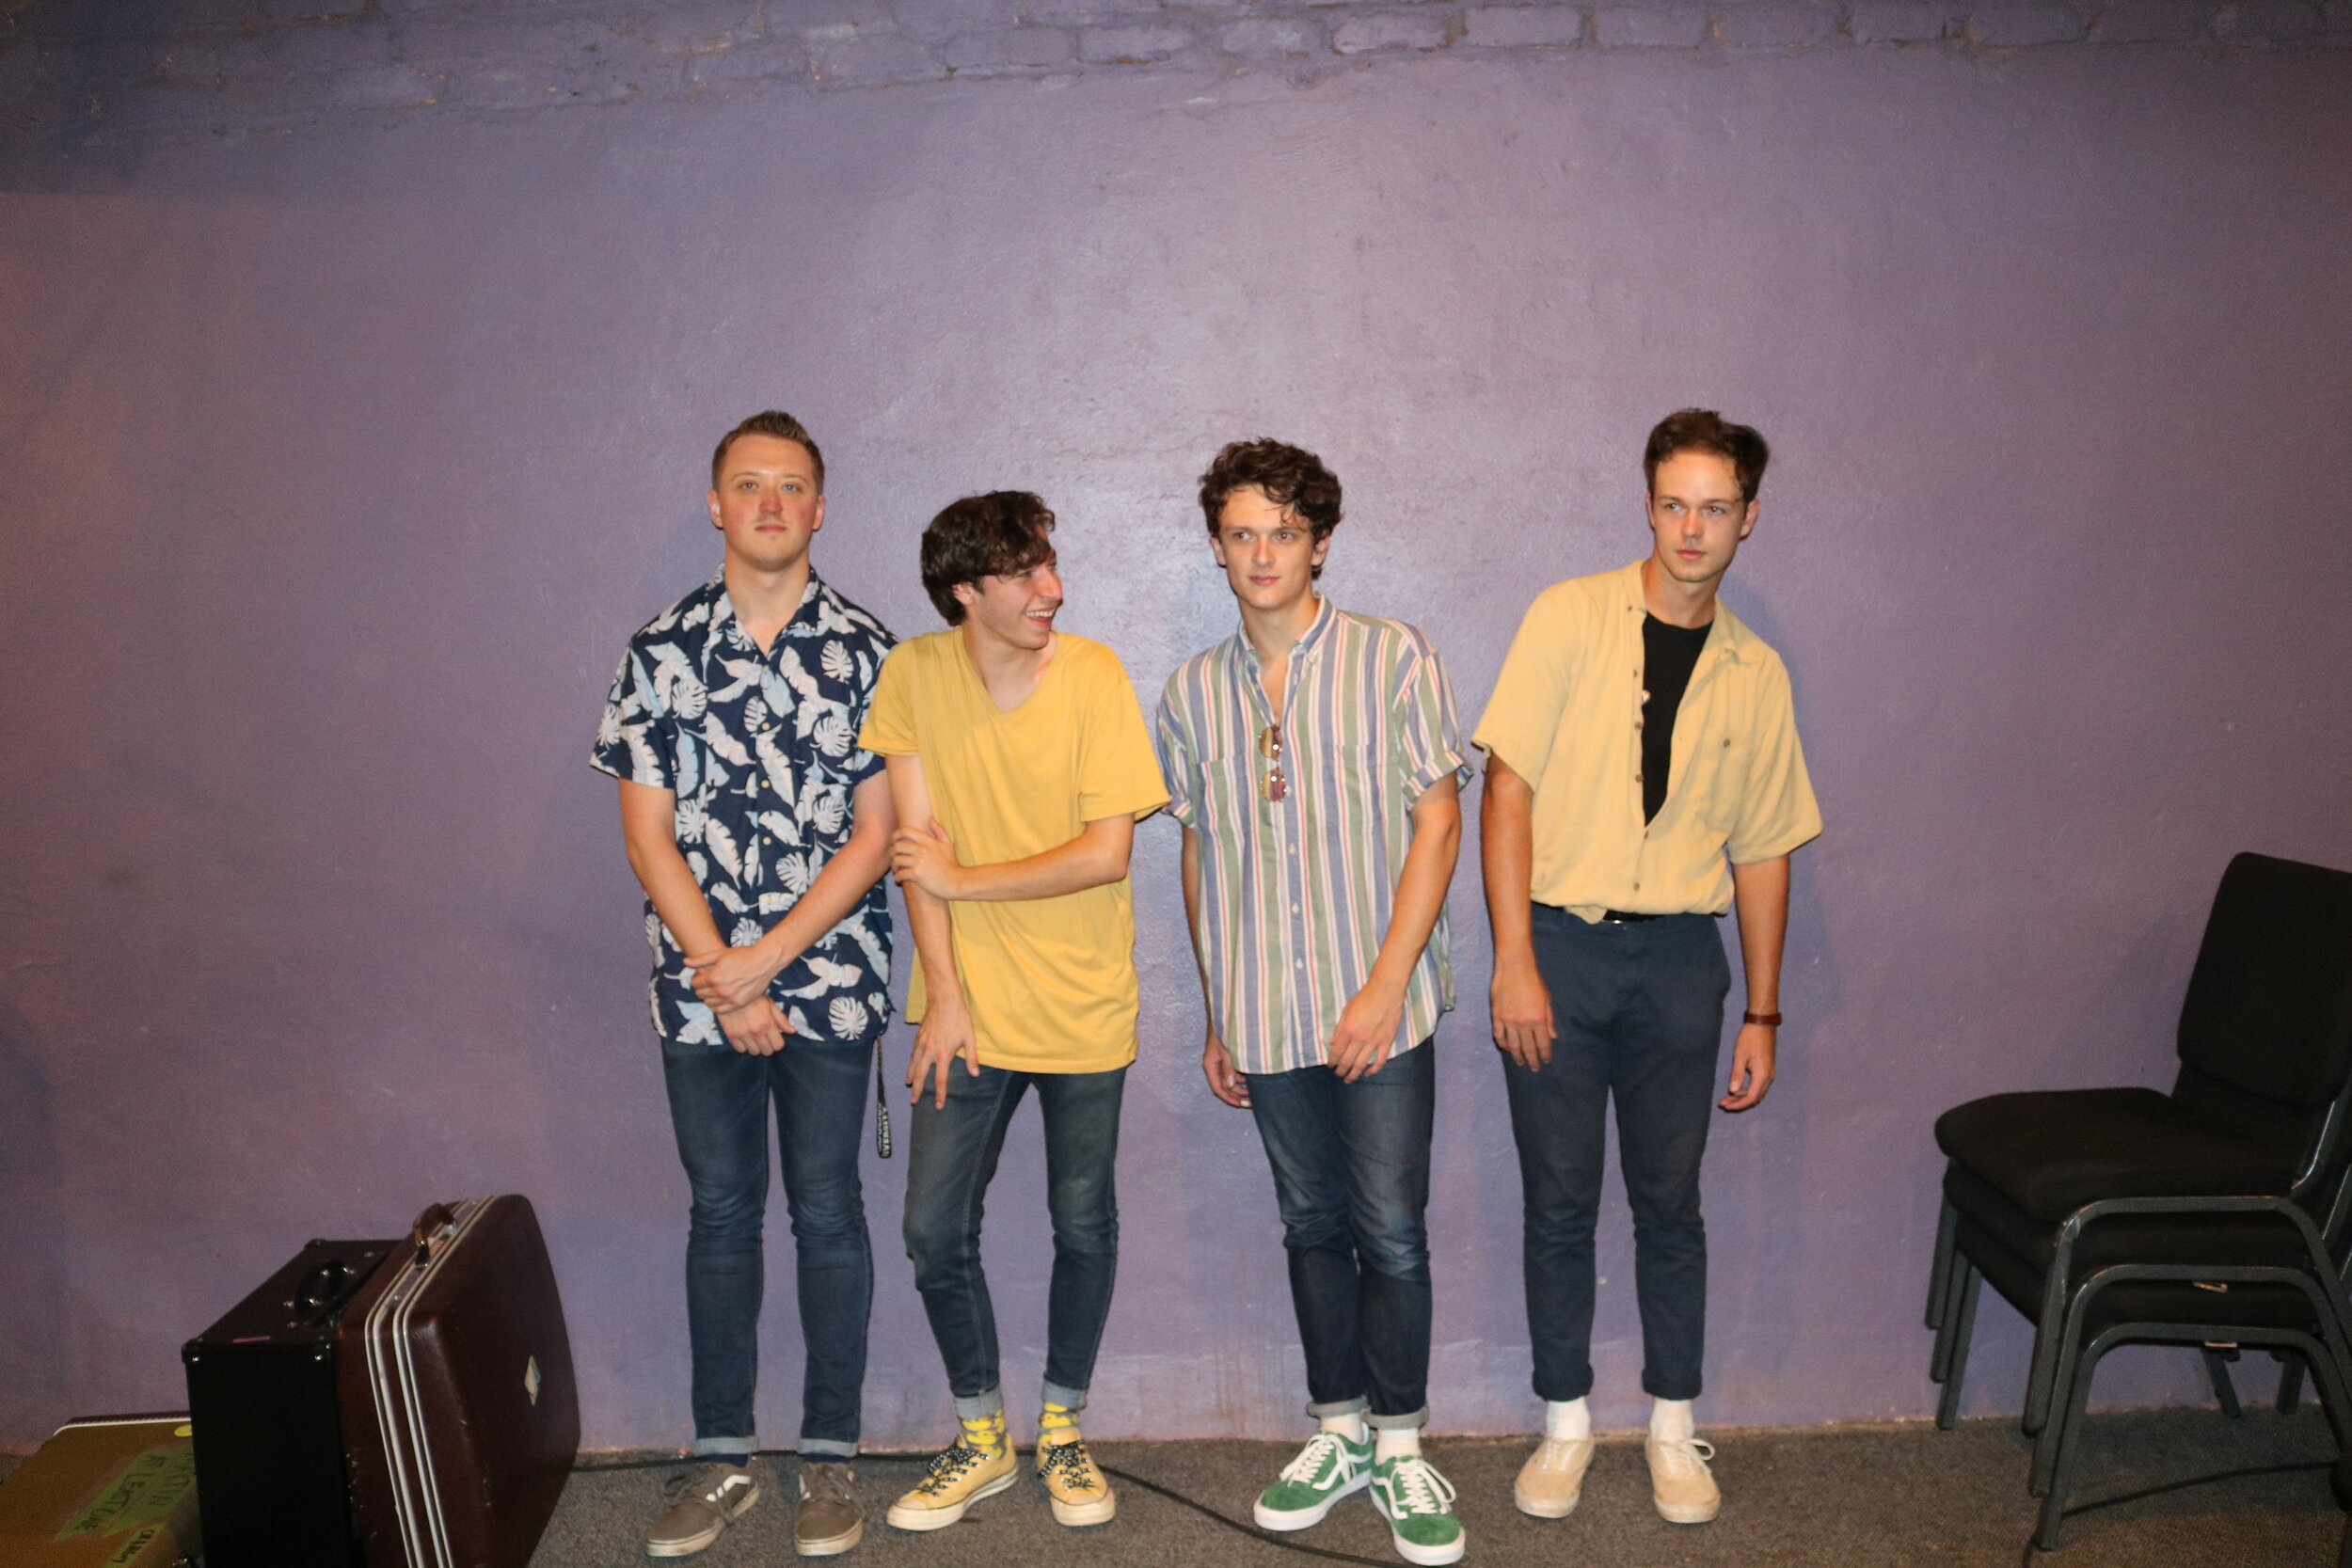 The band, At Least One posing for a picture after their successful set. From right, Austin Vander Mei (guitar one), Cameron Hardyman (bass), Matthew Martin (drums), and Daniel Martin (vocals and guitar two).